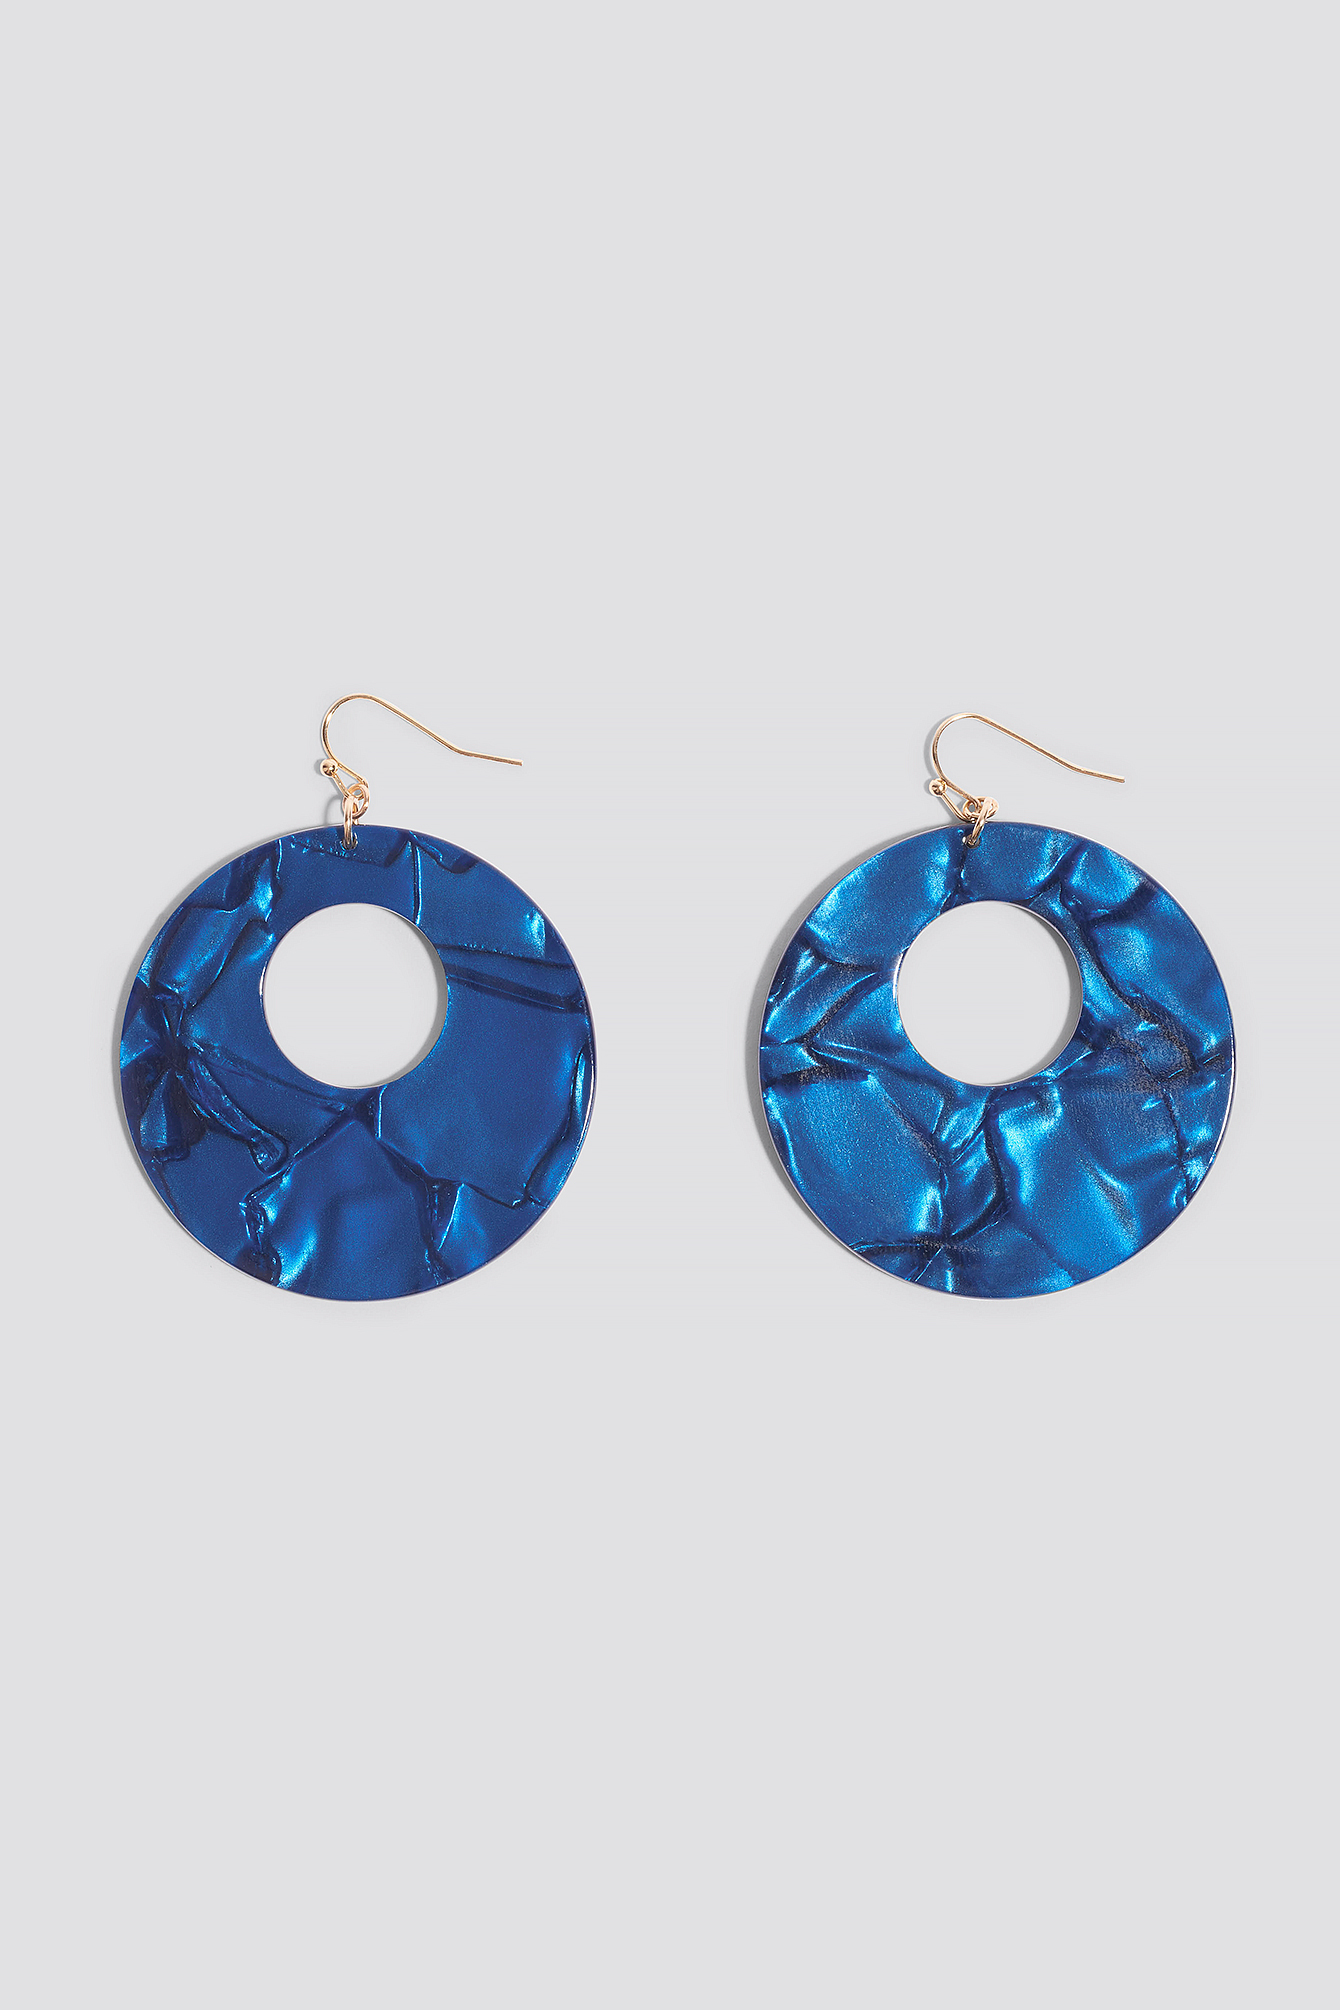 teardrop jewelry resin index armi earring earrings